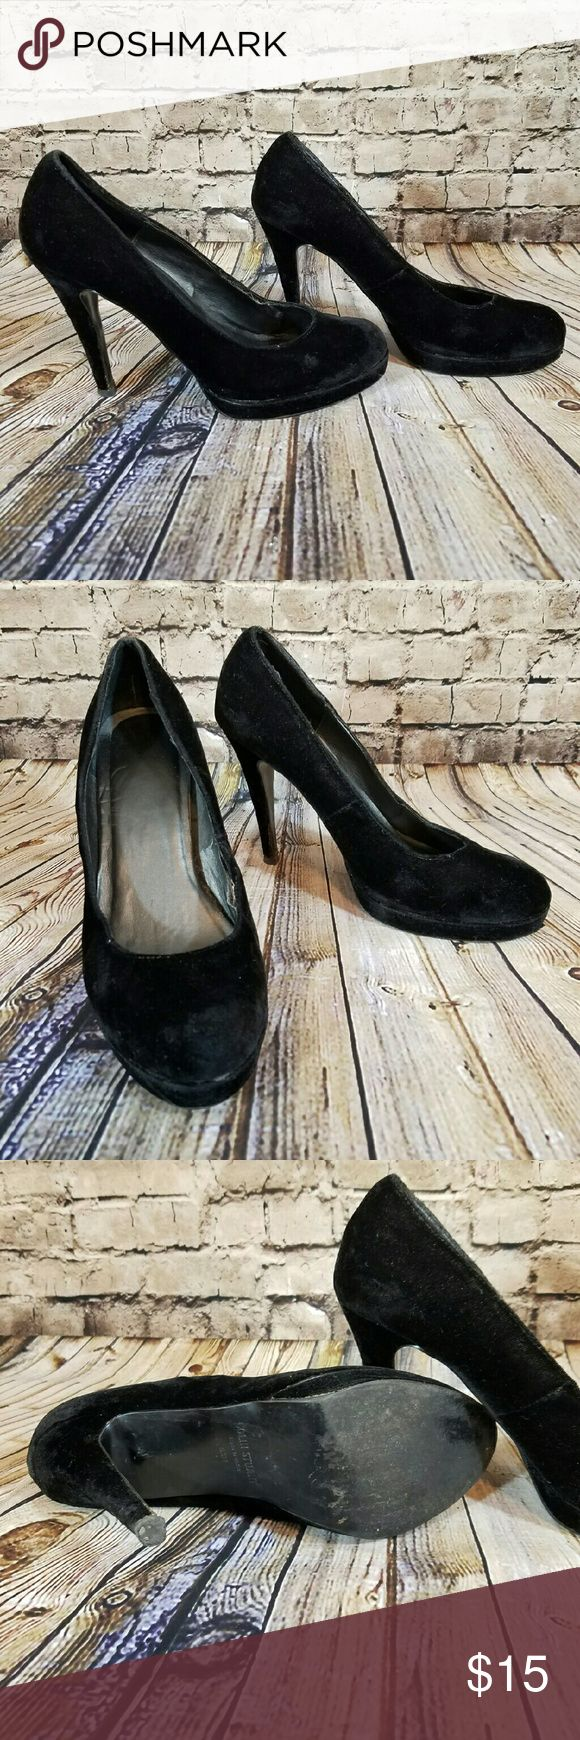 "Colin Stuart Black Velvet Stiletto Pump These are definitely a little bruised, but if you want to catch the velvet trend on a budget, these are your gals!! The seems are pulling apart in a few spots Size 6.5 4"" heel with 1/2"" platform Colin Stuart Shoes Heels"